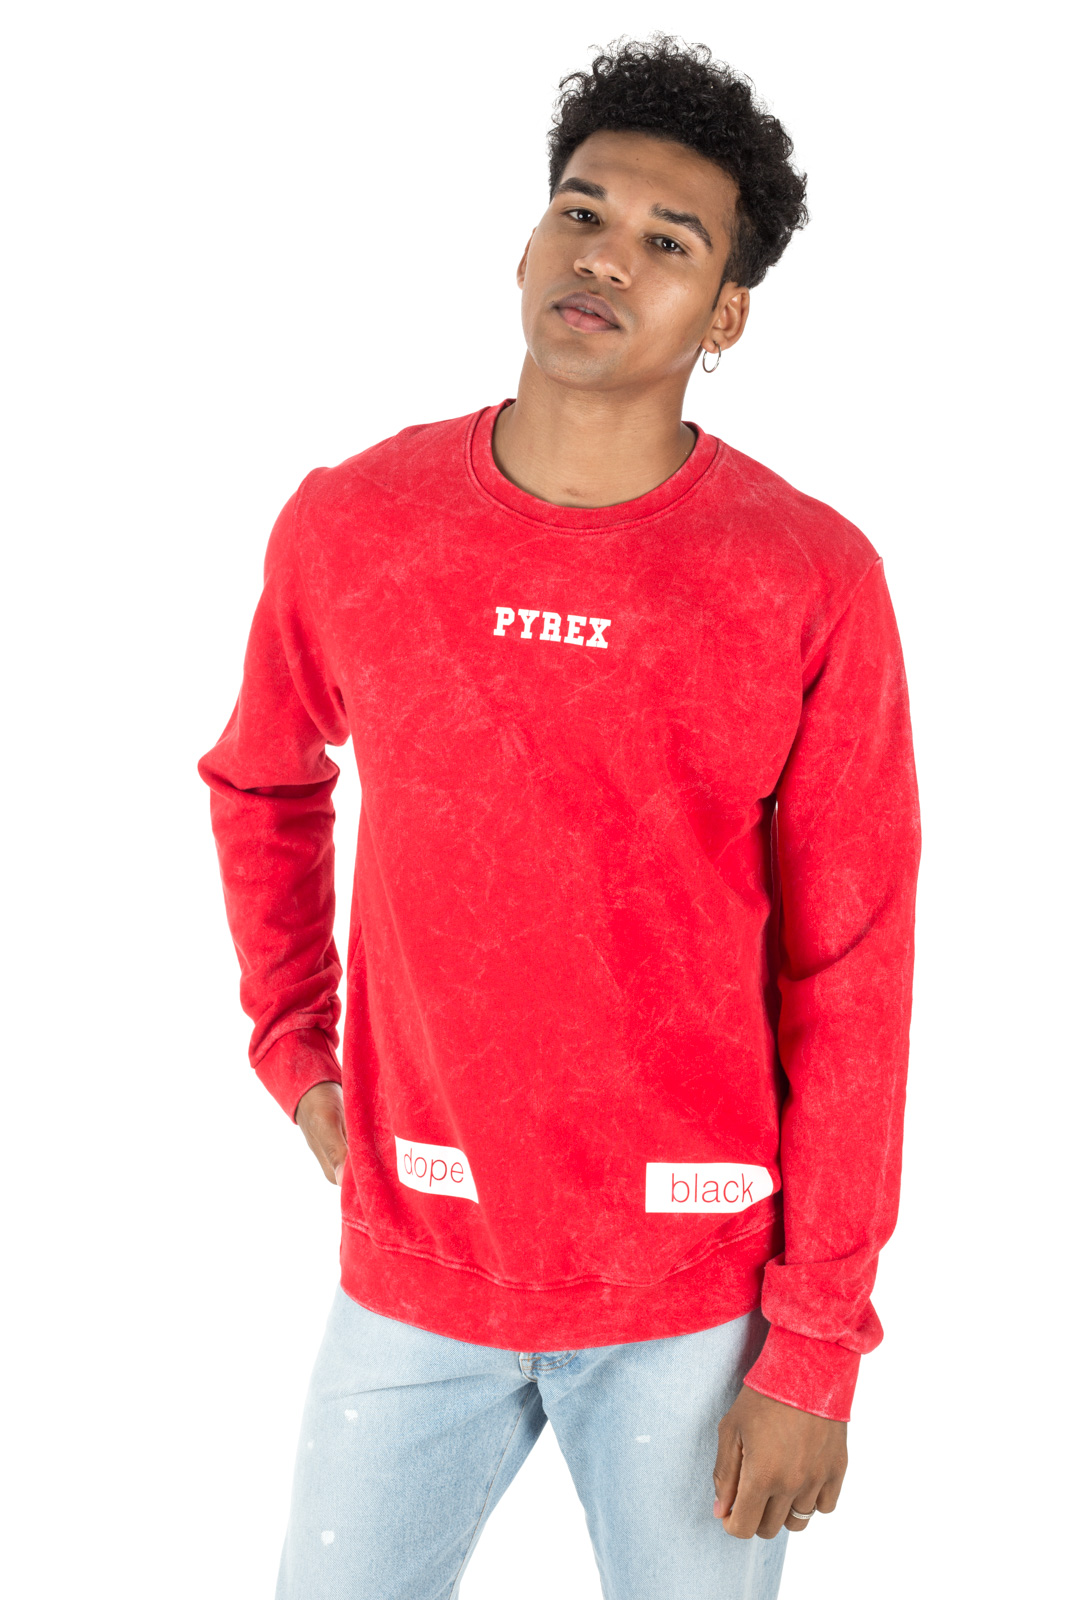 Pyrex - Red Vintage Sweatshirt